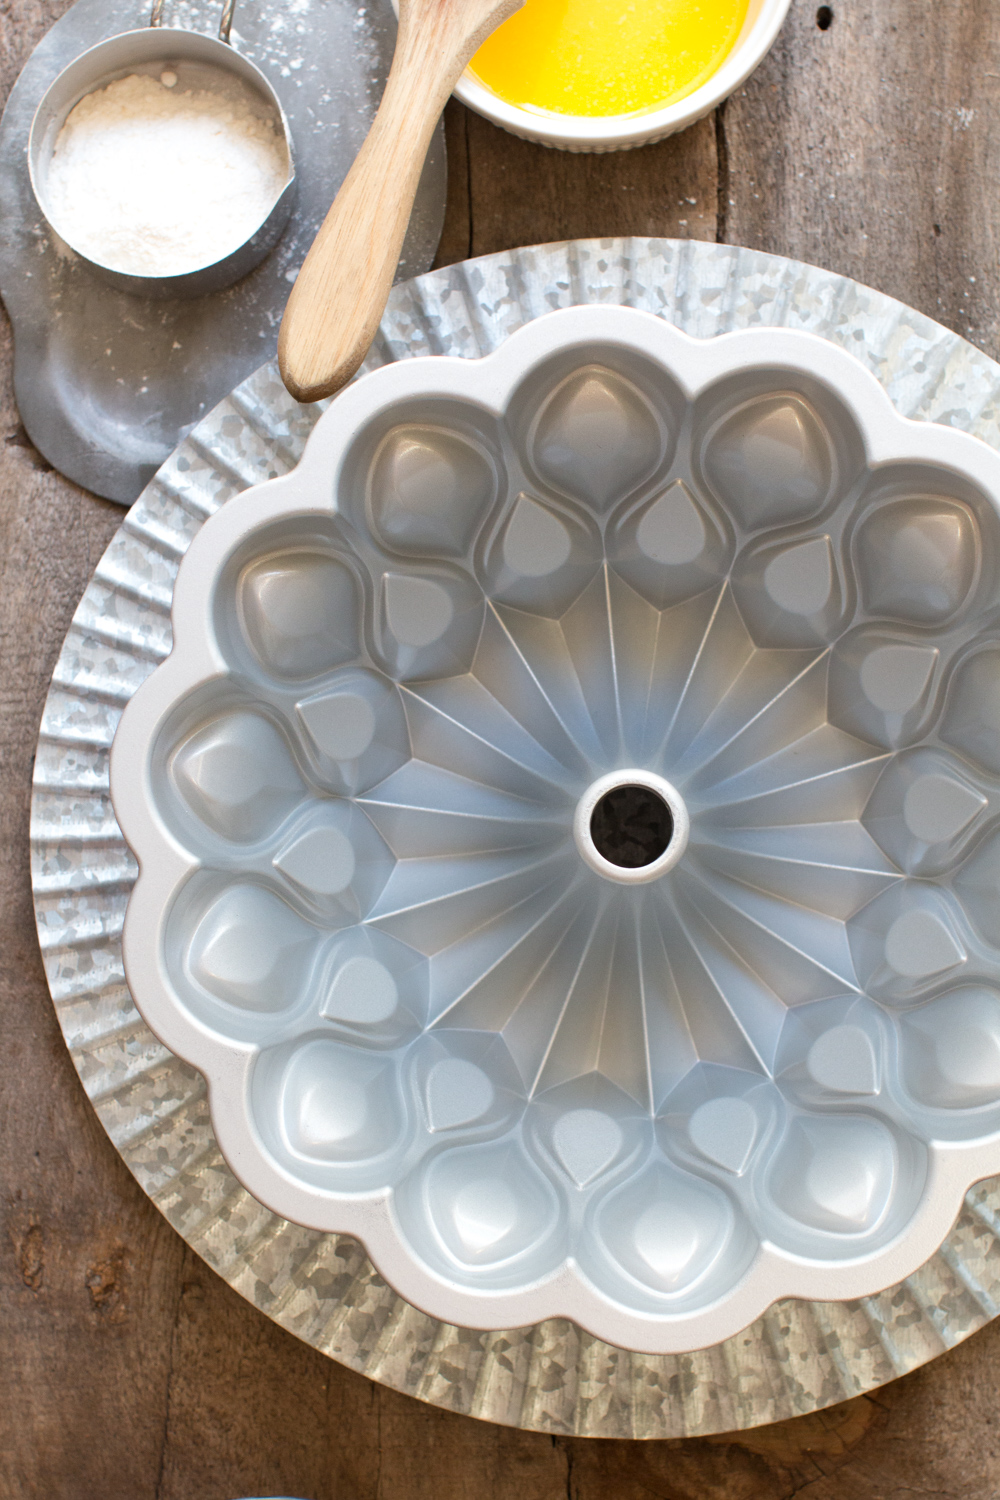 heritage Crown Bundt Pan from Nordic Ware